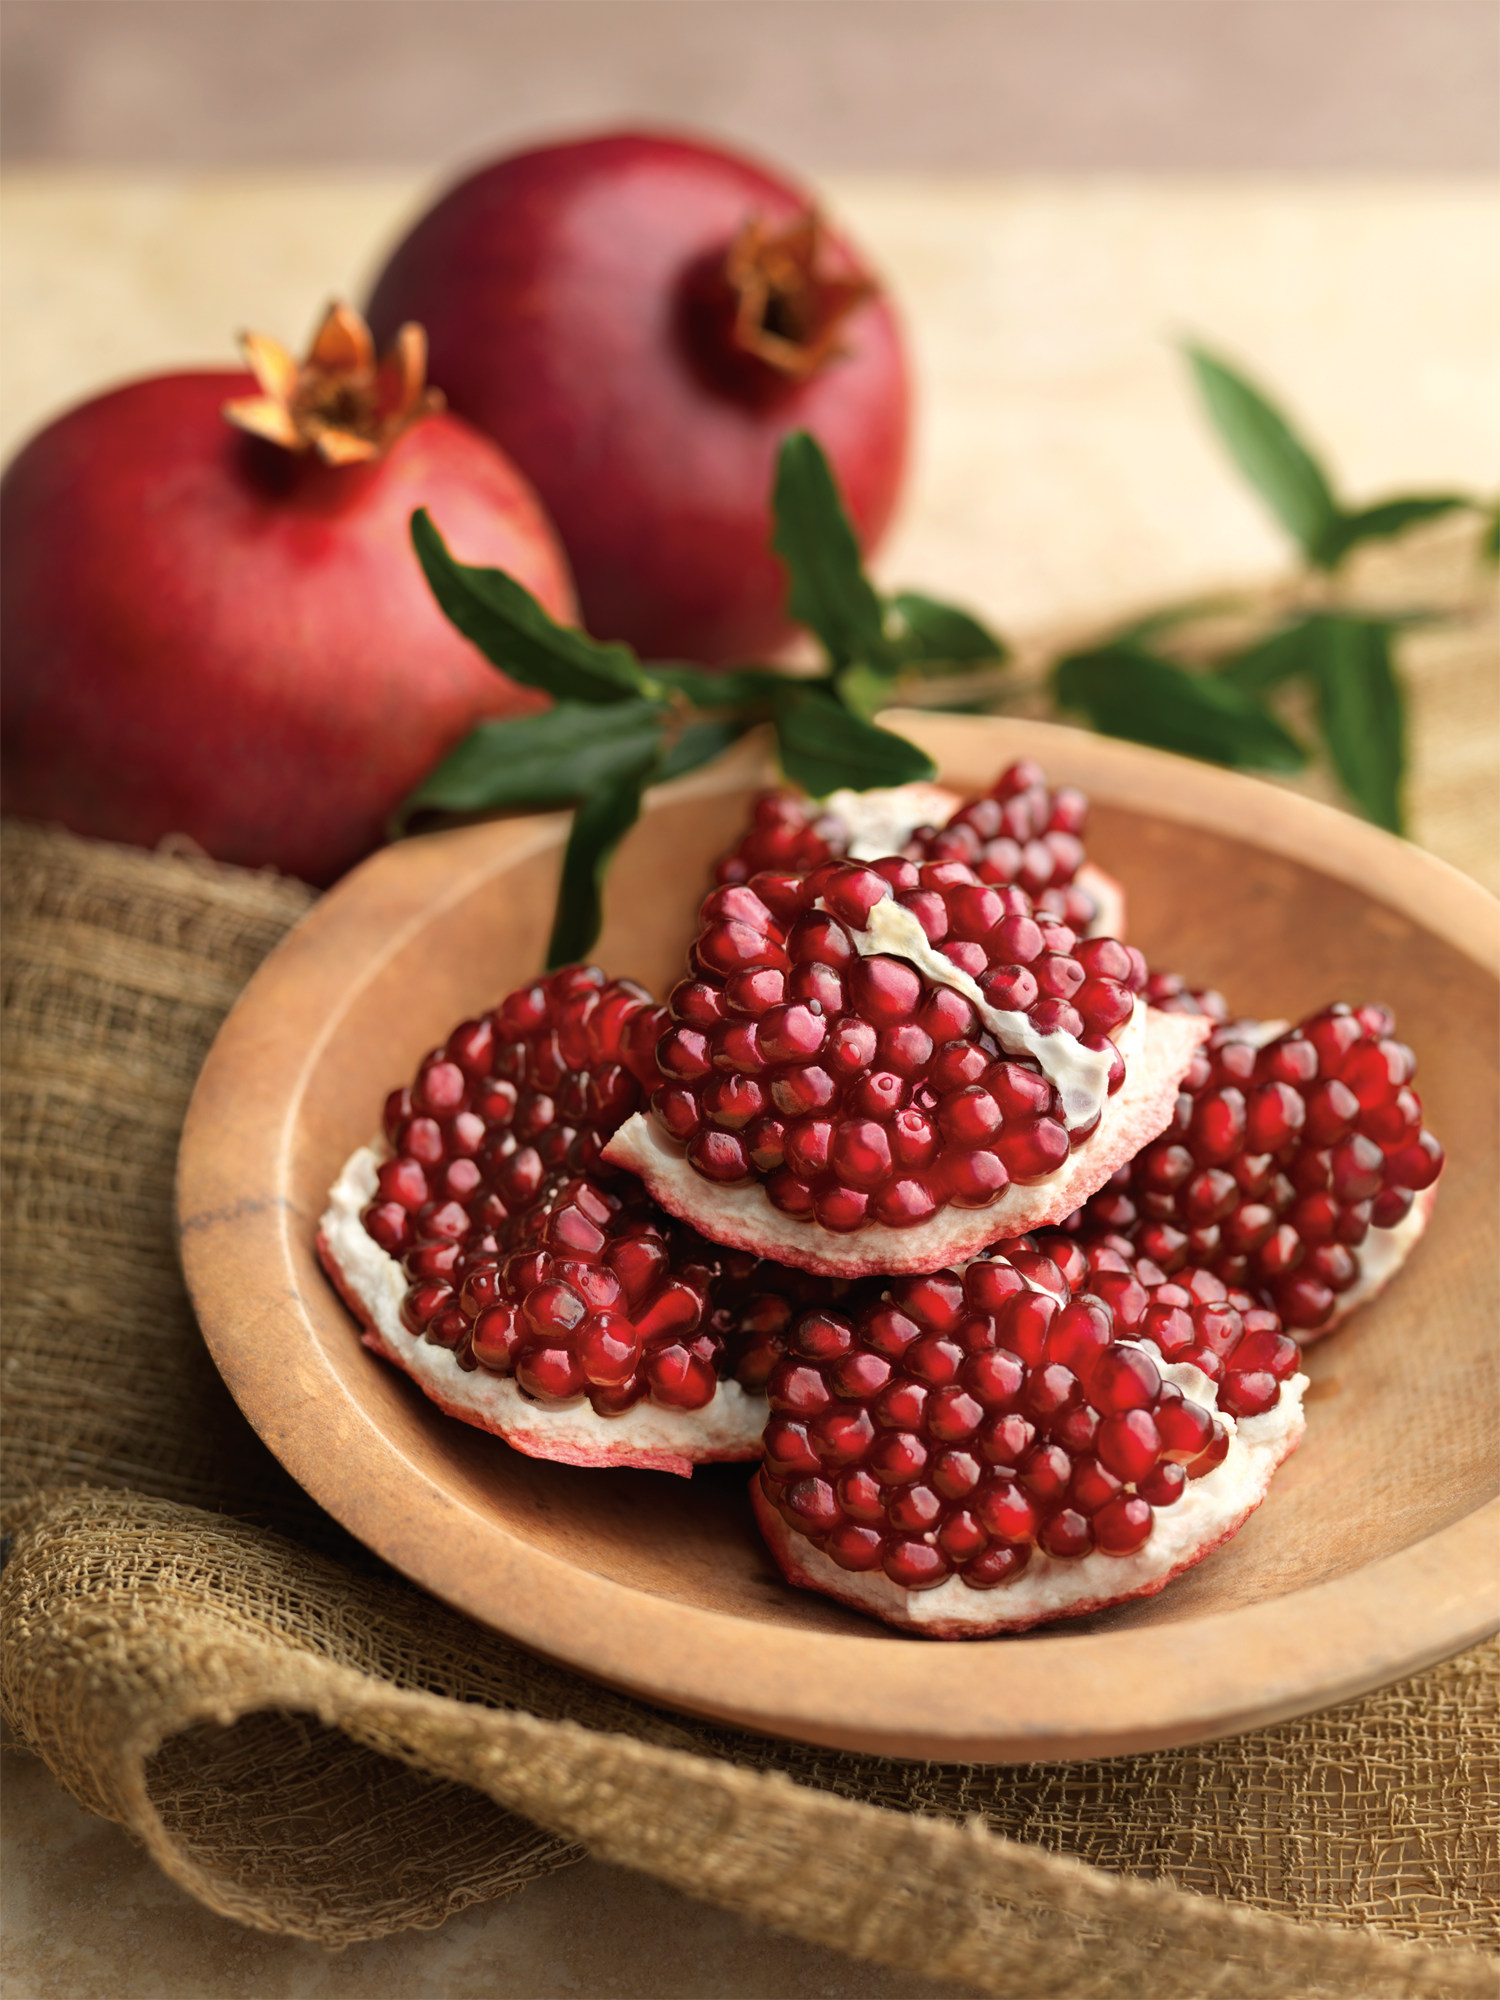 pomegranate guide: how to pick, cut, prepare, juice, and cook with pomegranate